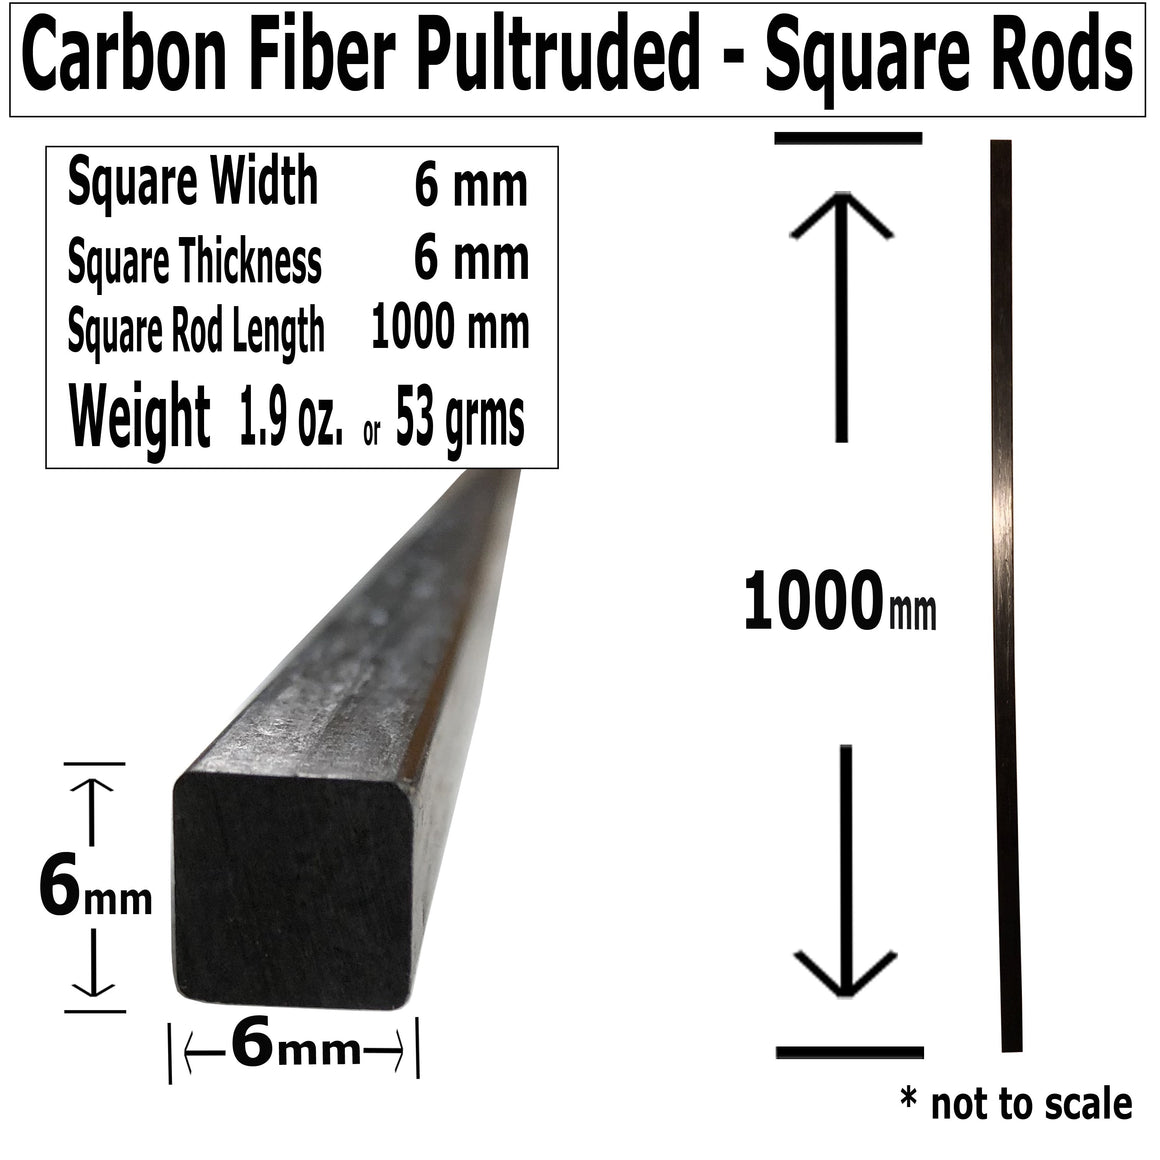 (1) 6mm X 1000mm - PULTRUDED-Square Carbon Fiber Rod. 100% Pultruded high Strength Carbon Fiber. Used for Drones, Radio Controlled Vehicles. Projects requiring high Strength to Weight Components.